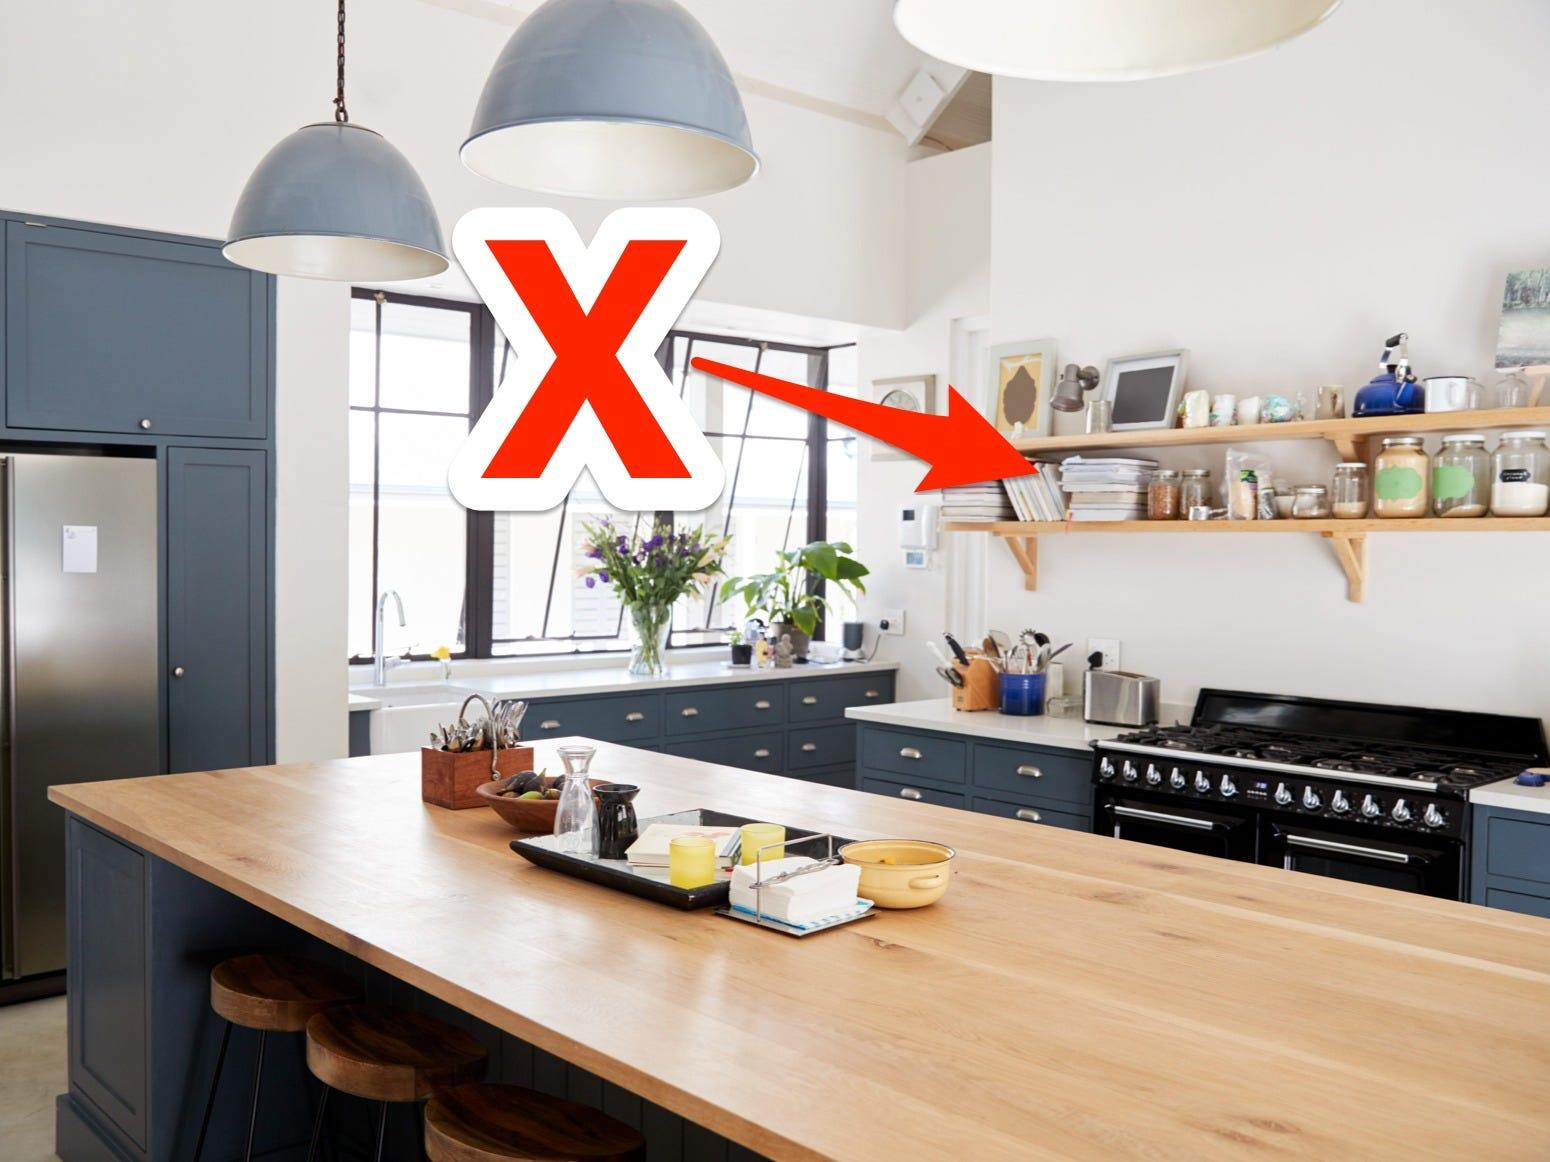 12 home trends from 2020 that need to disappear, according ...